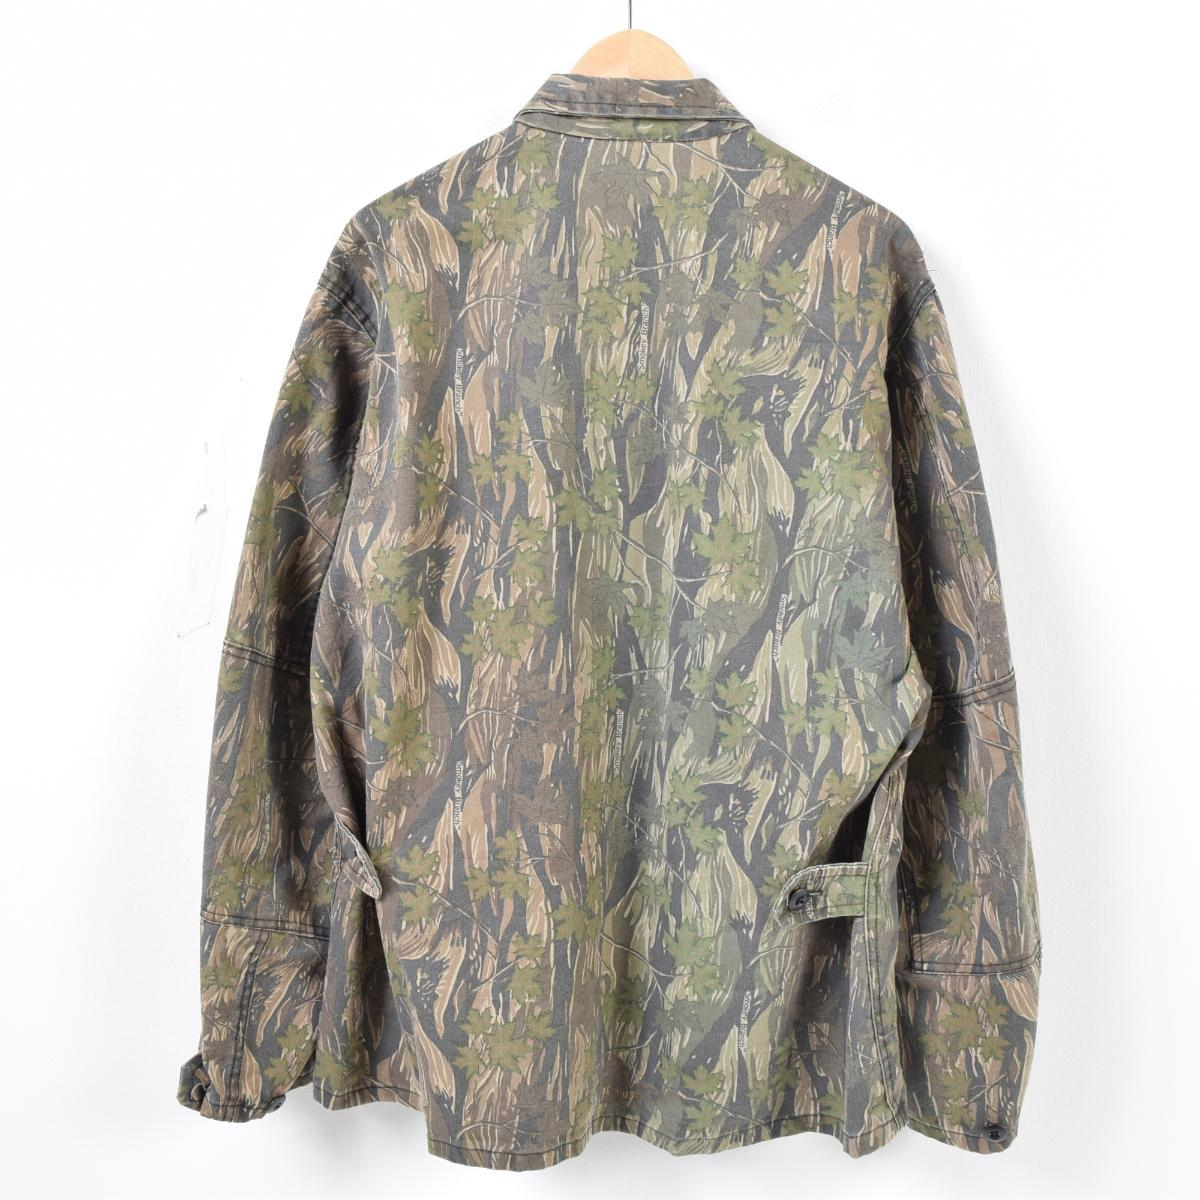 c55d4ca292 VINTAGE CLOTHING JAM  Private article MSI INTERNATIONAL camouflage ...